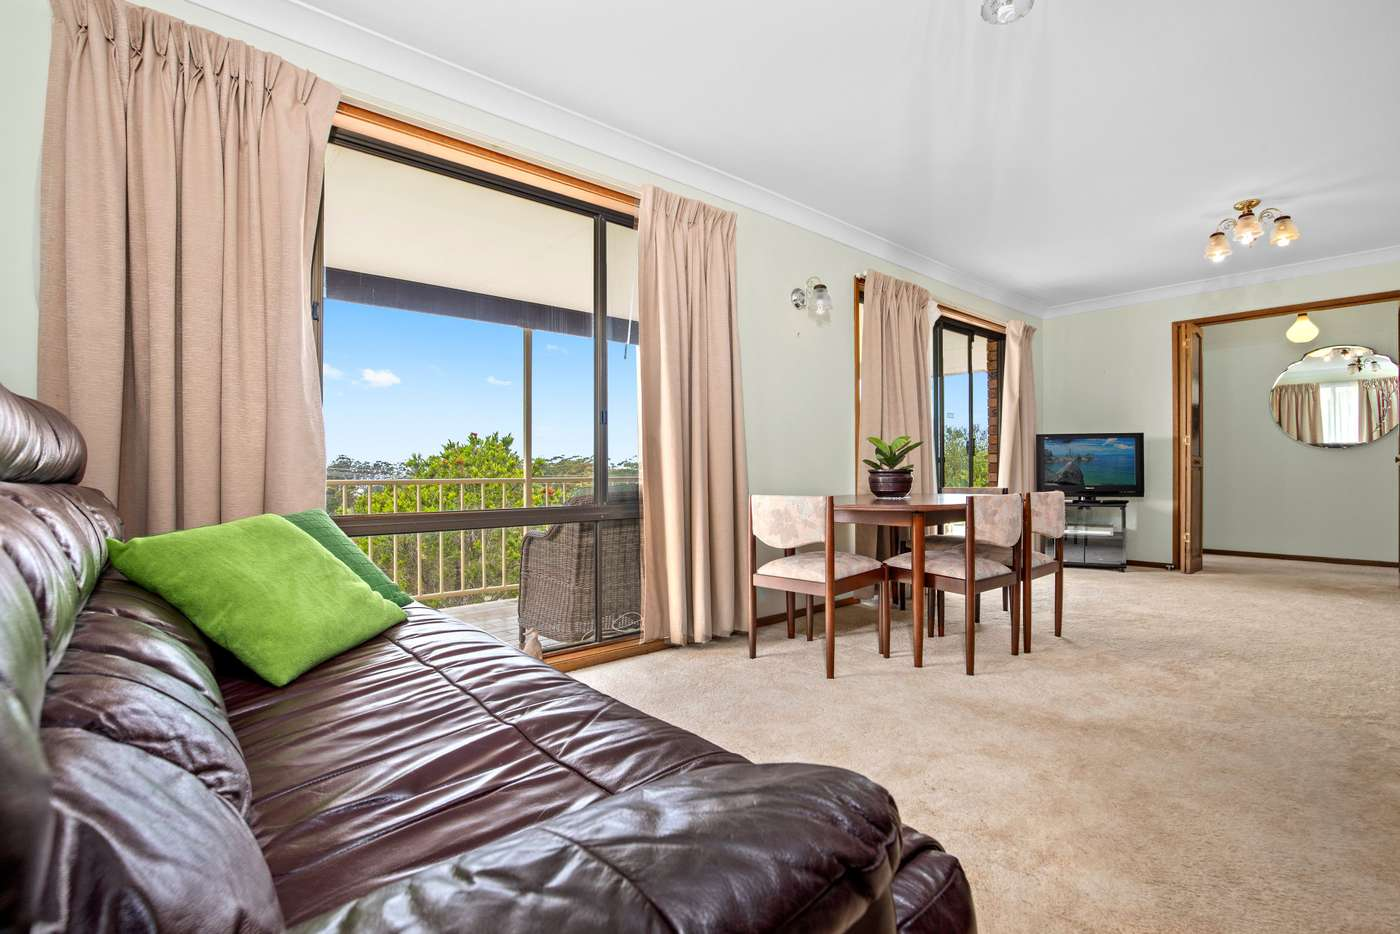 Fifth view of Homely house listing, 22 Seaview Street, Mollymook NSW 2539